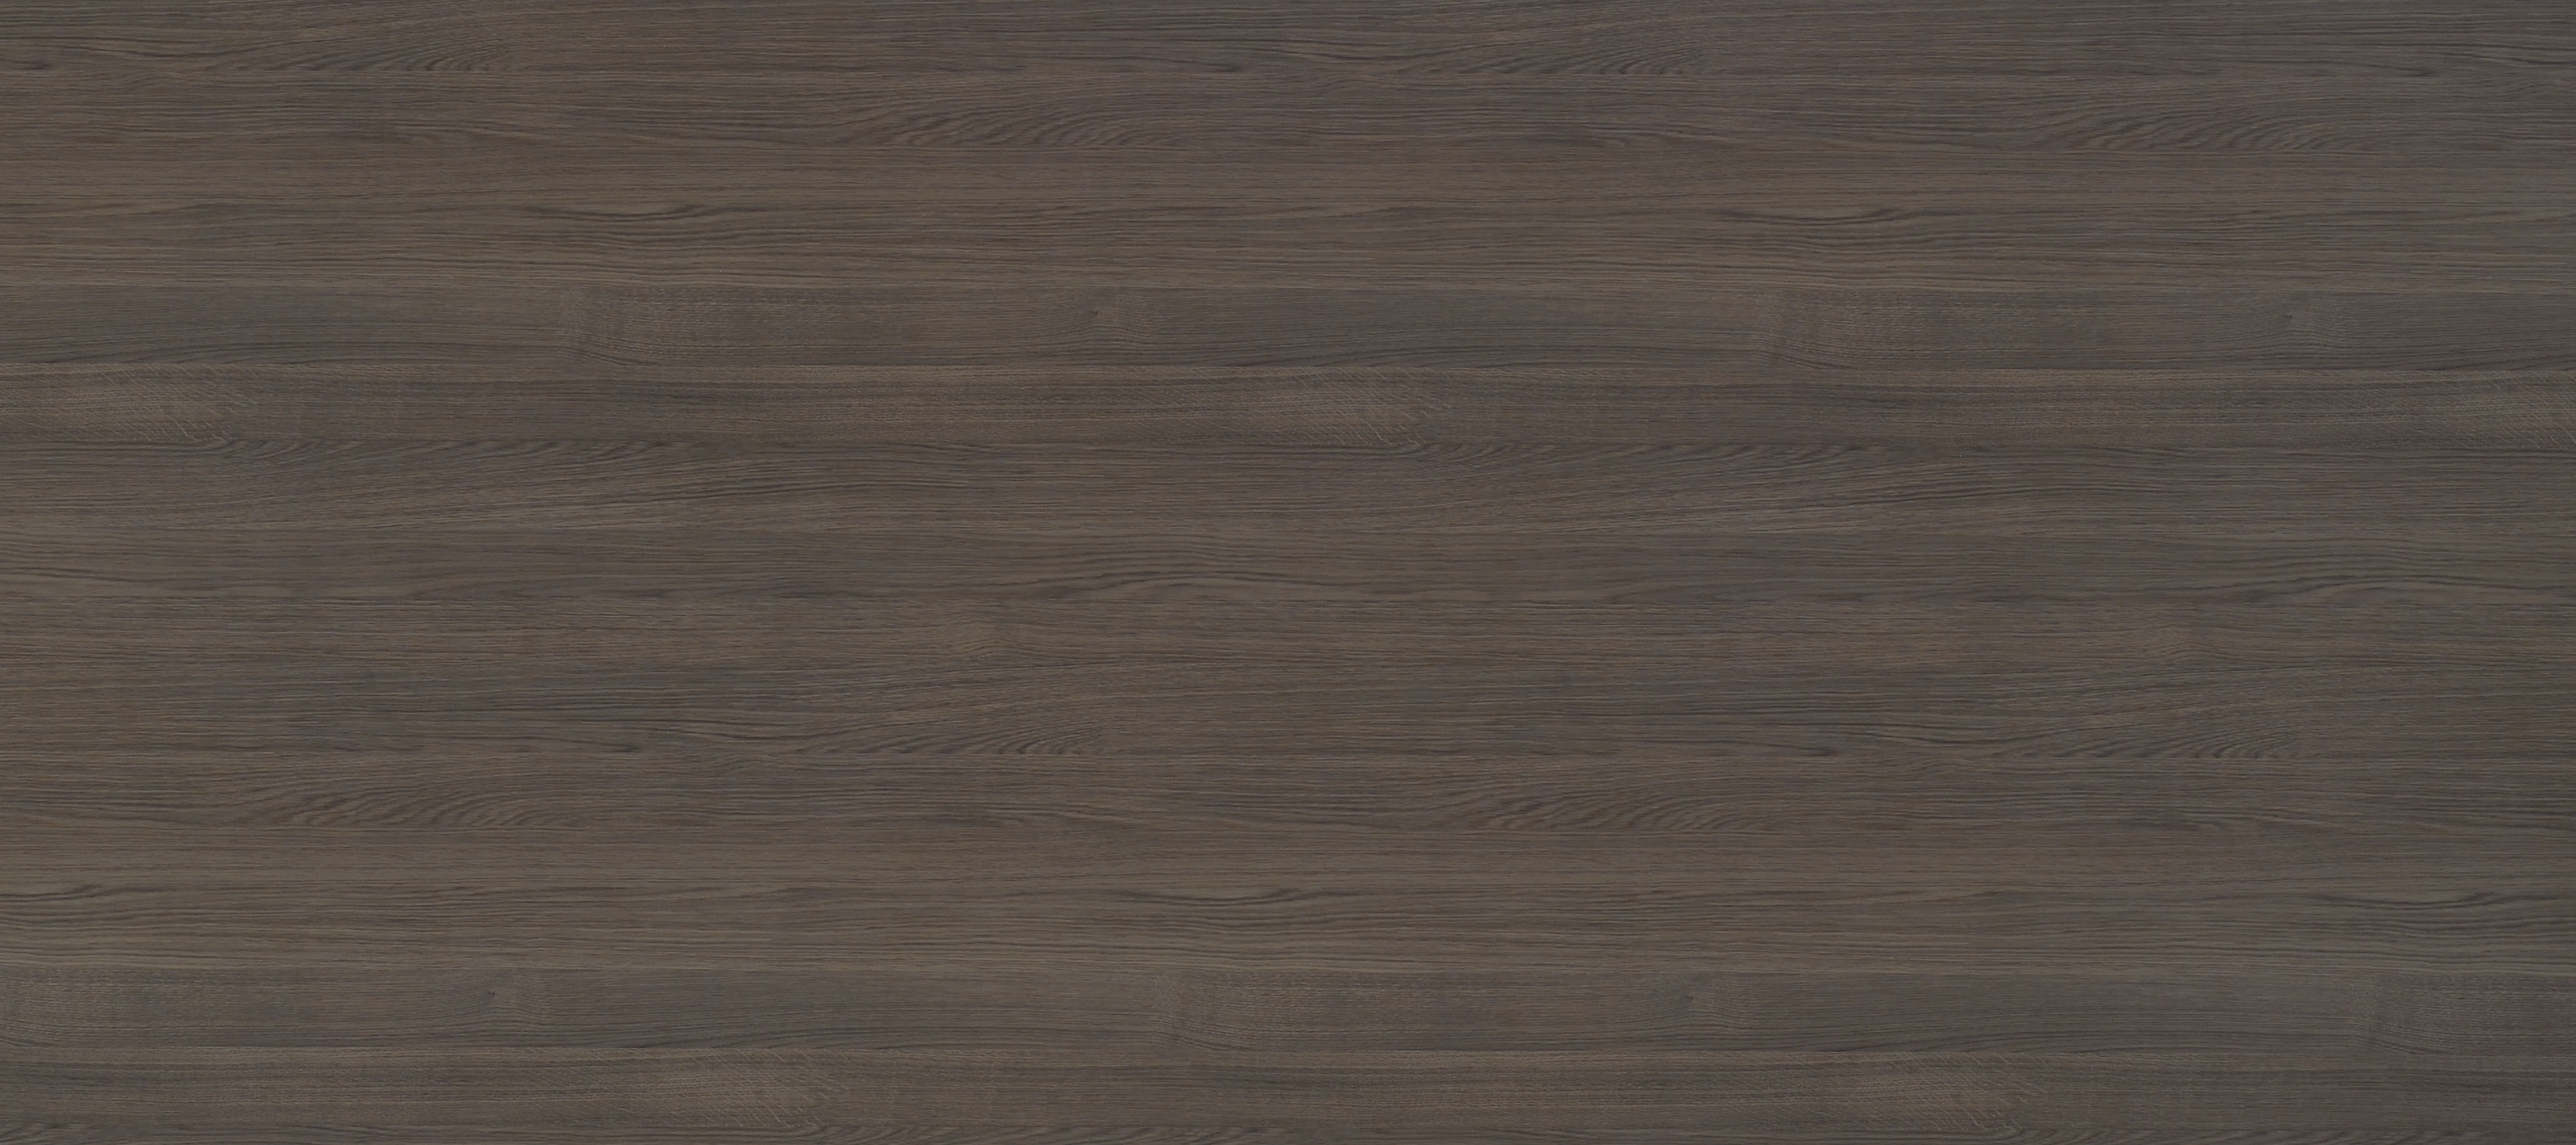 Wood texture photo free download - Texture Wood Free Download Photo Download Wood Texture Background